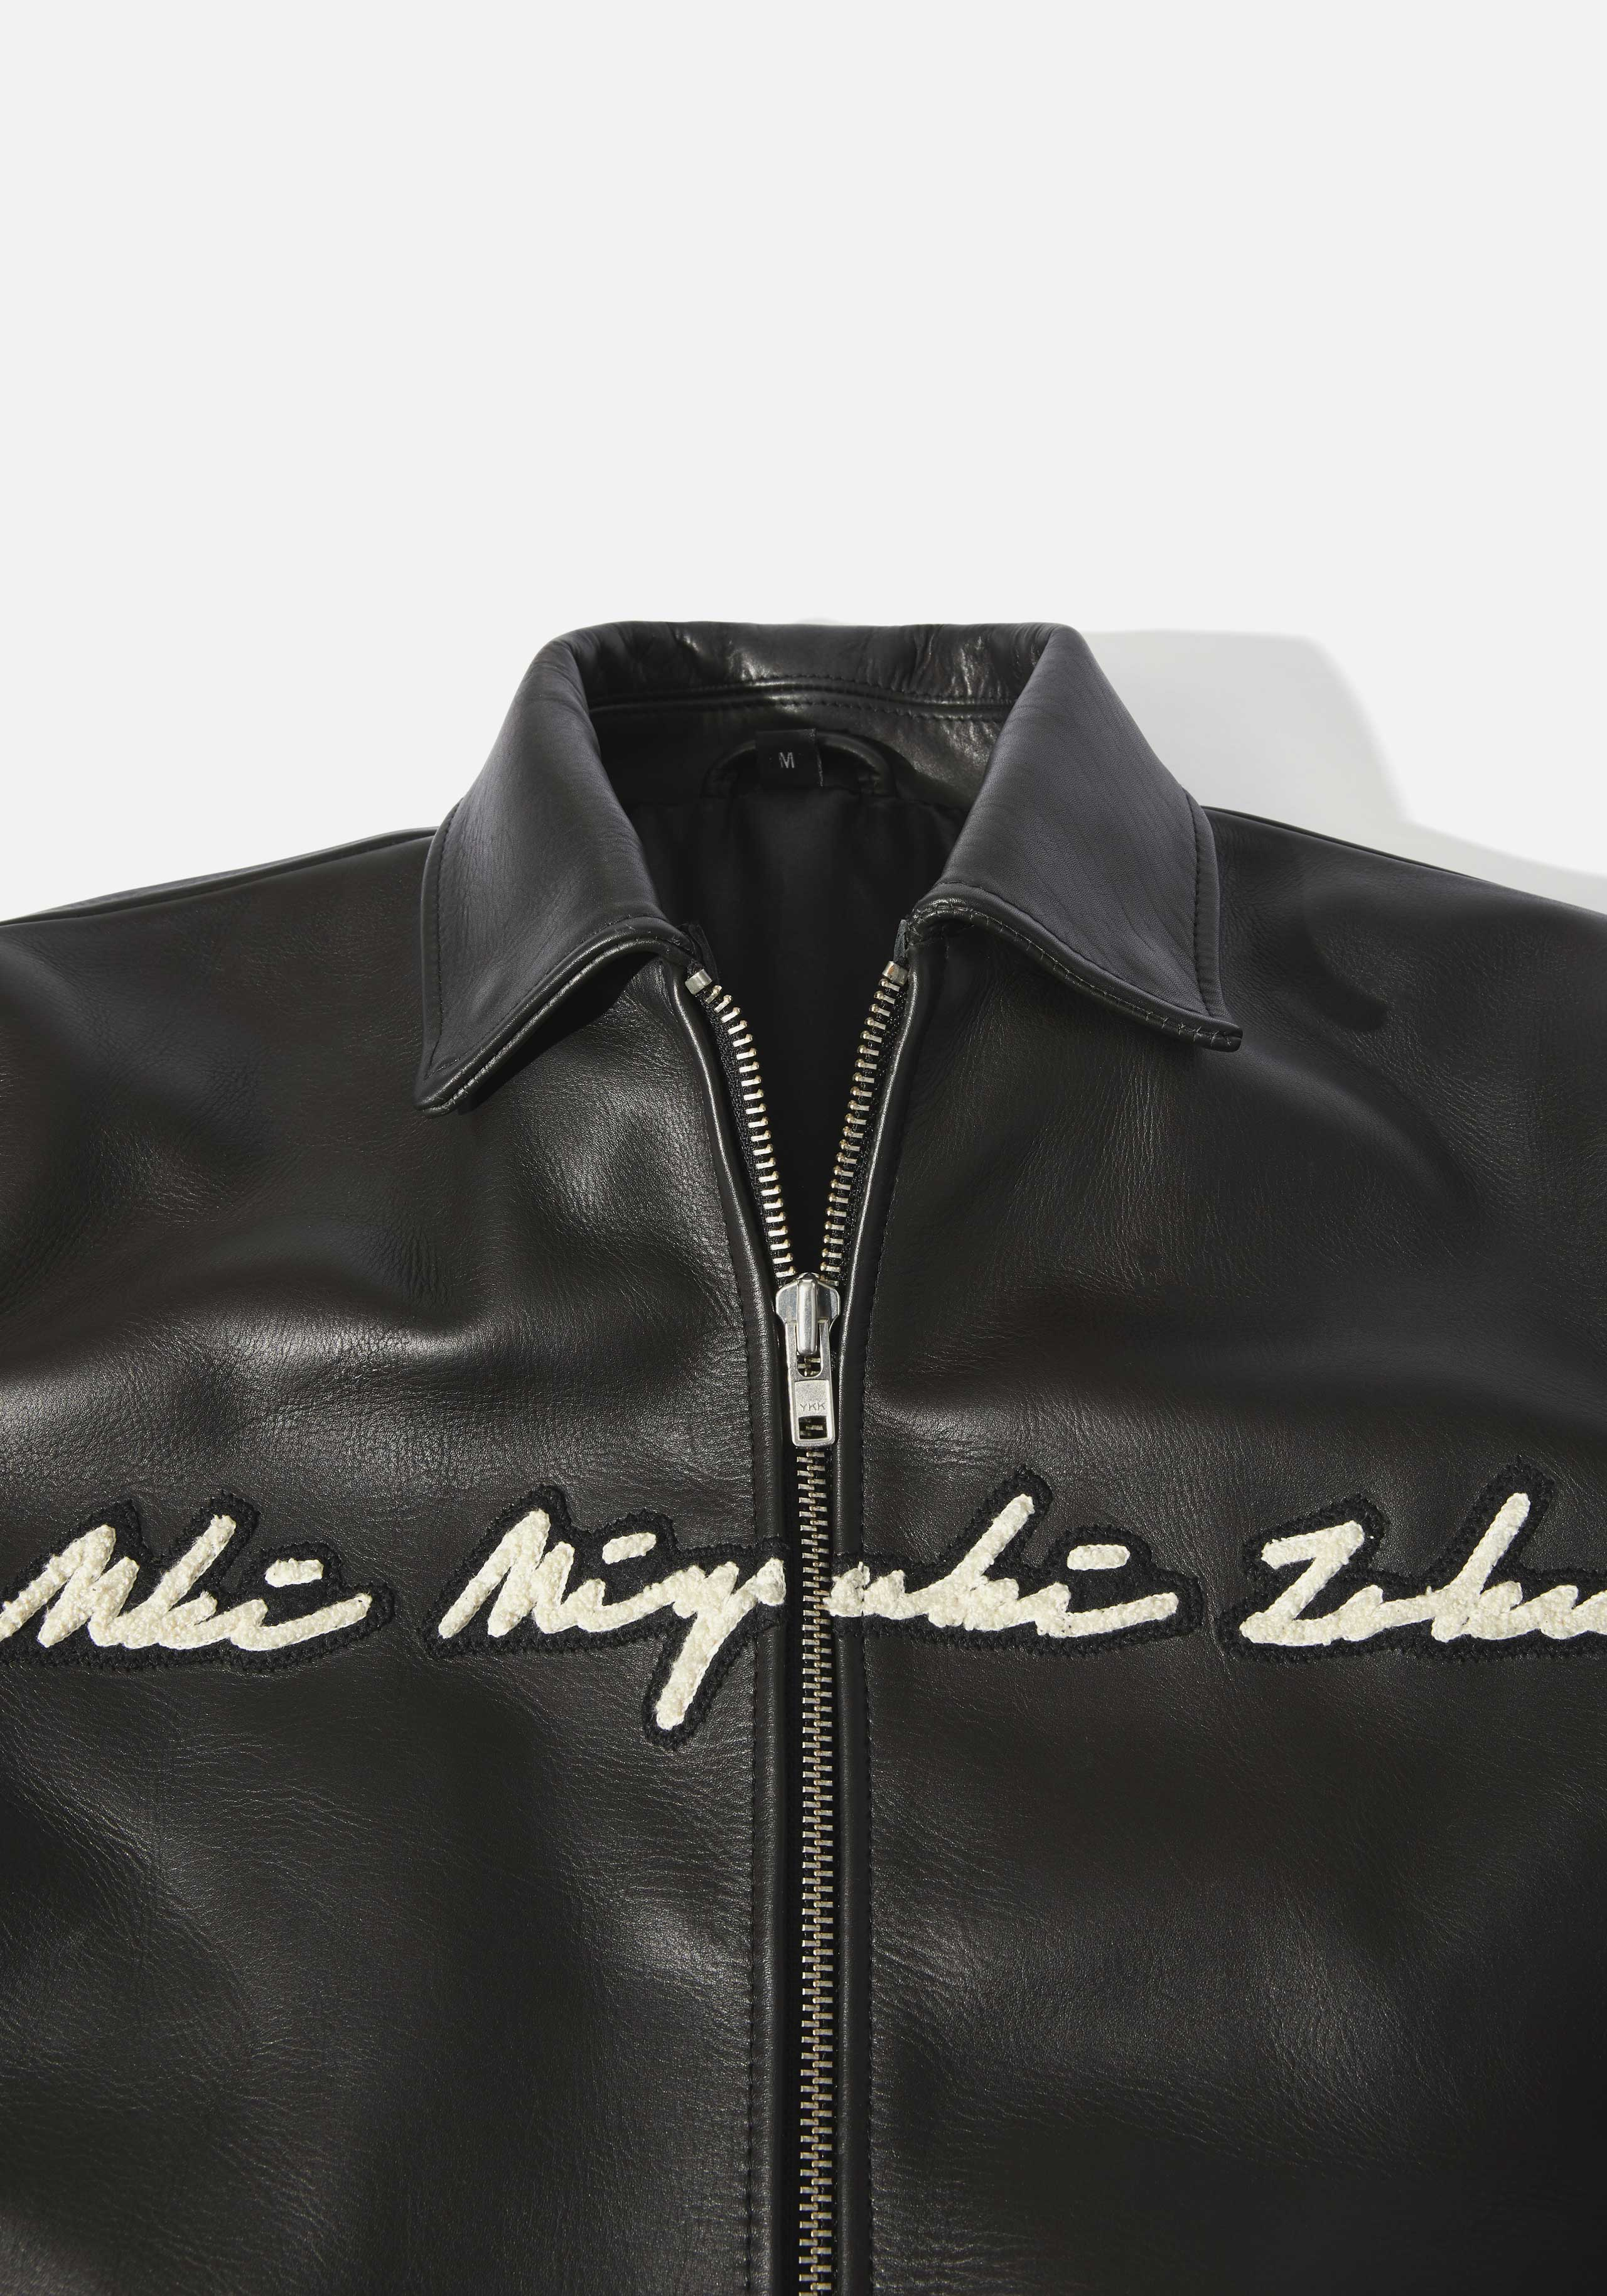 mki full leather rider varsity 3